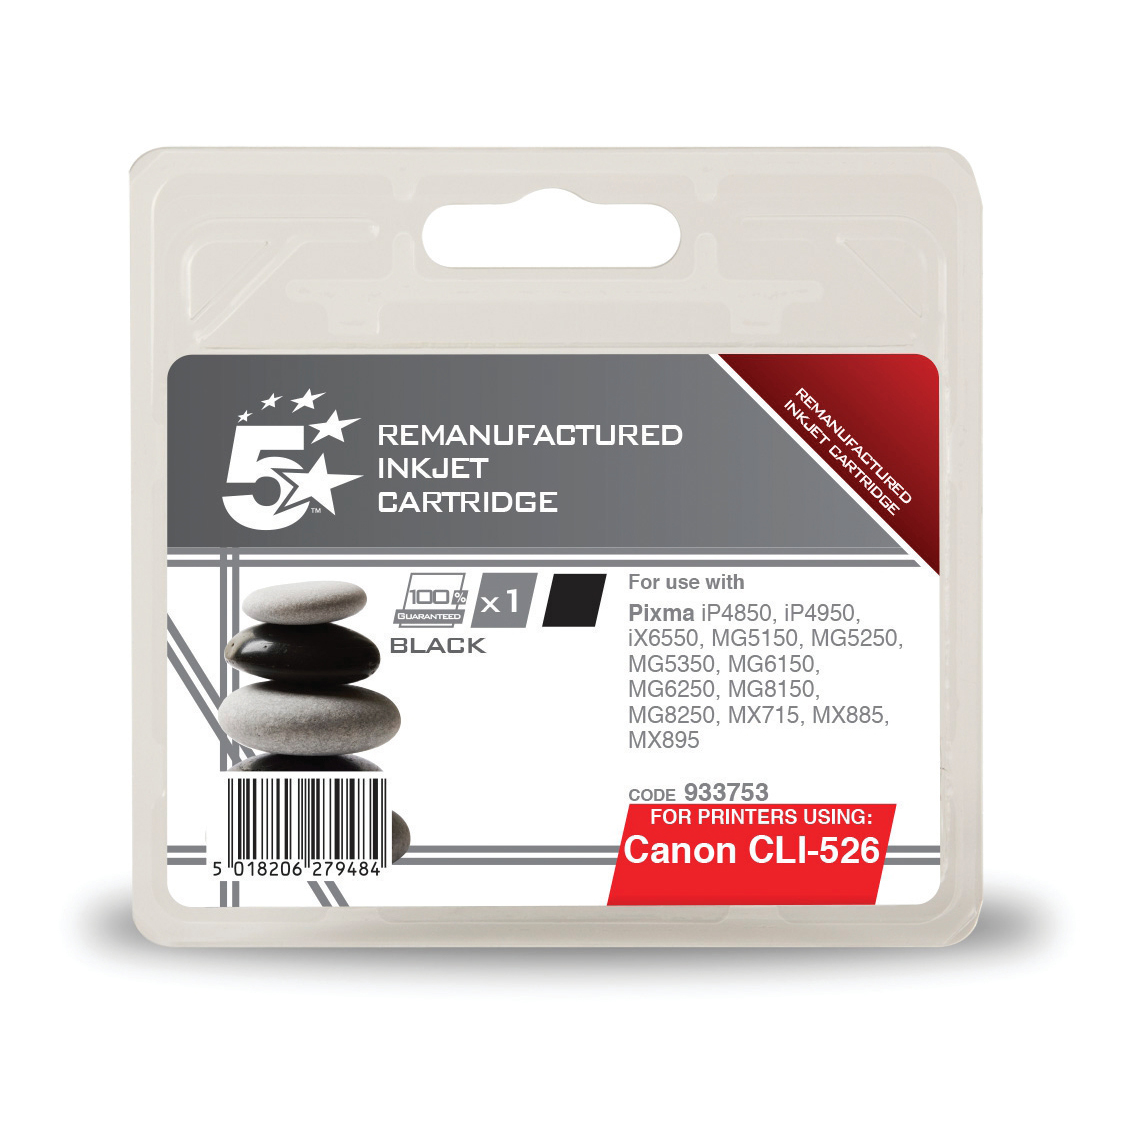 5 Star Office Remanufactured Inkjet Cartridge Page Life 660pp 9ml Black [Canon CLI-526BK Alternative]